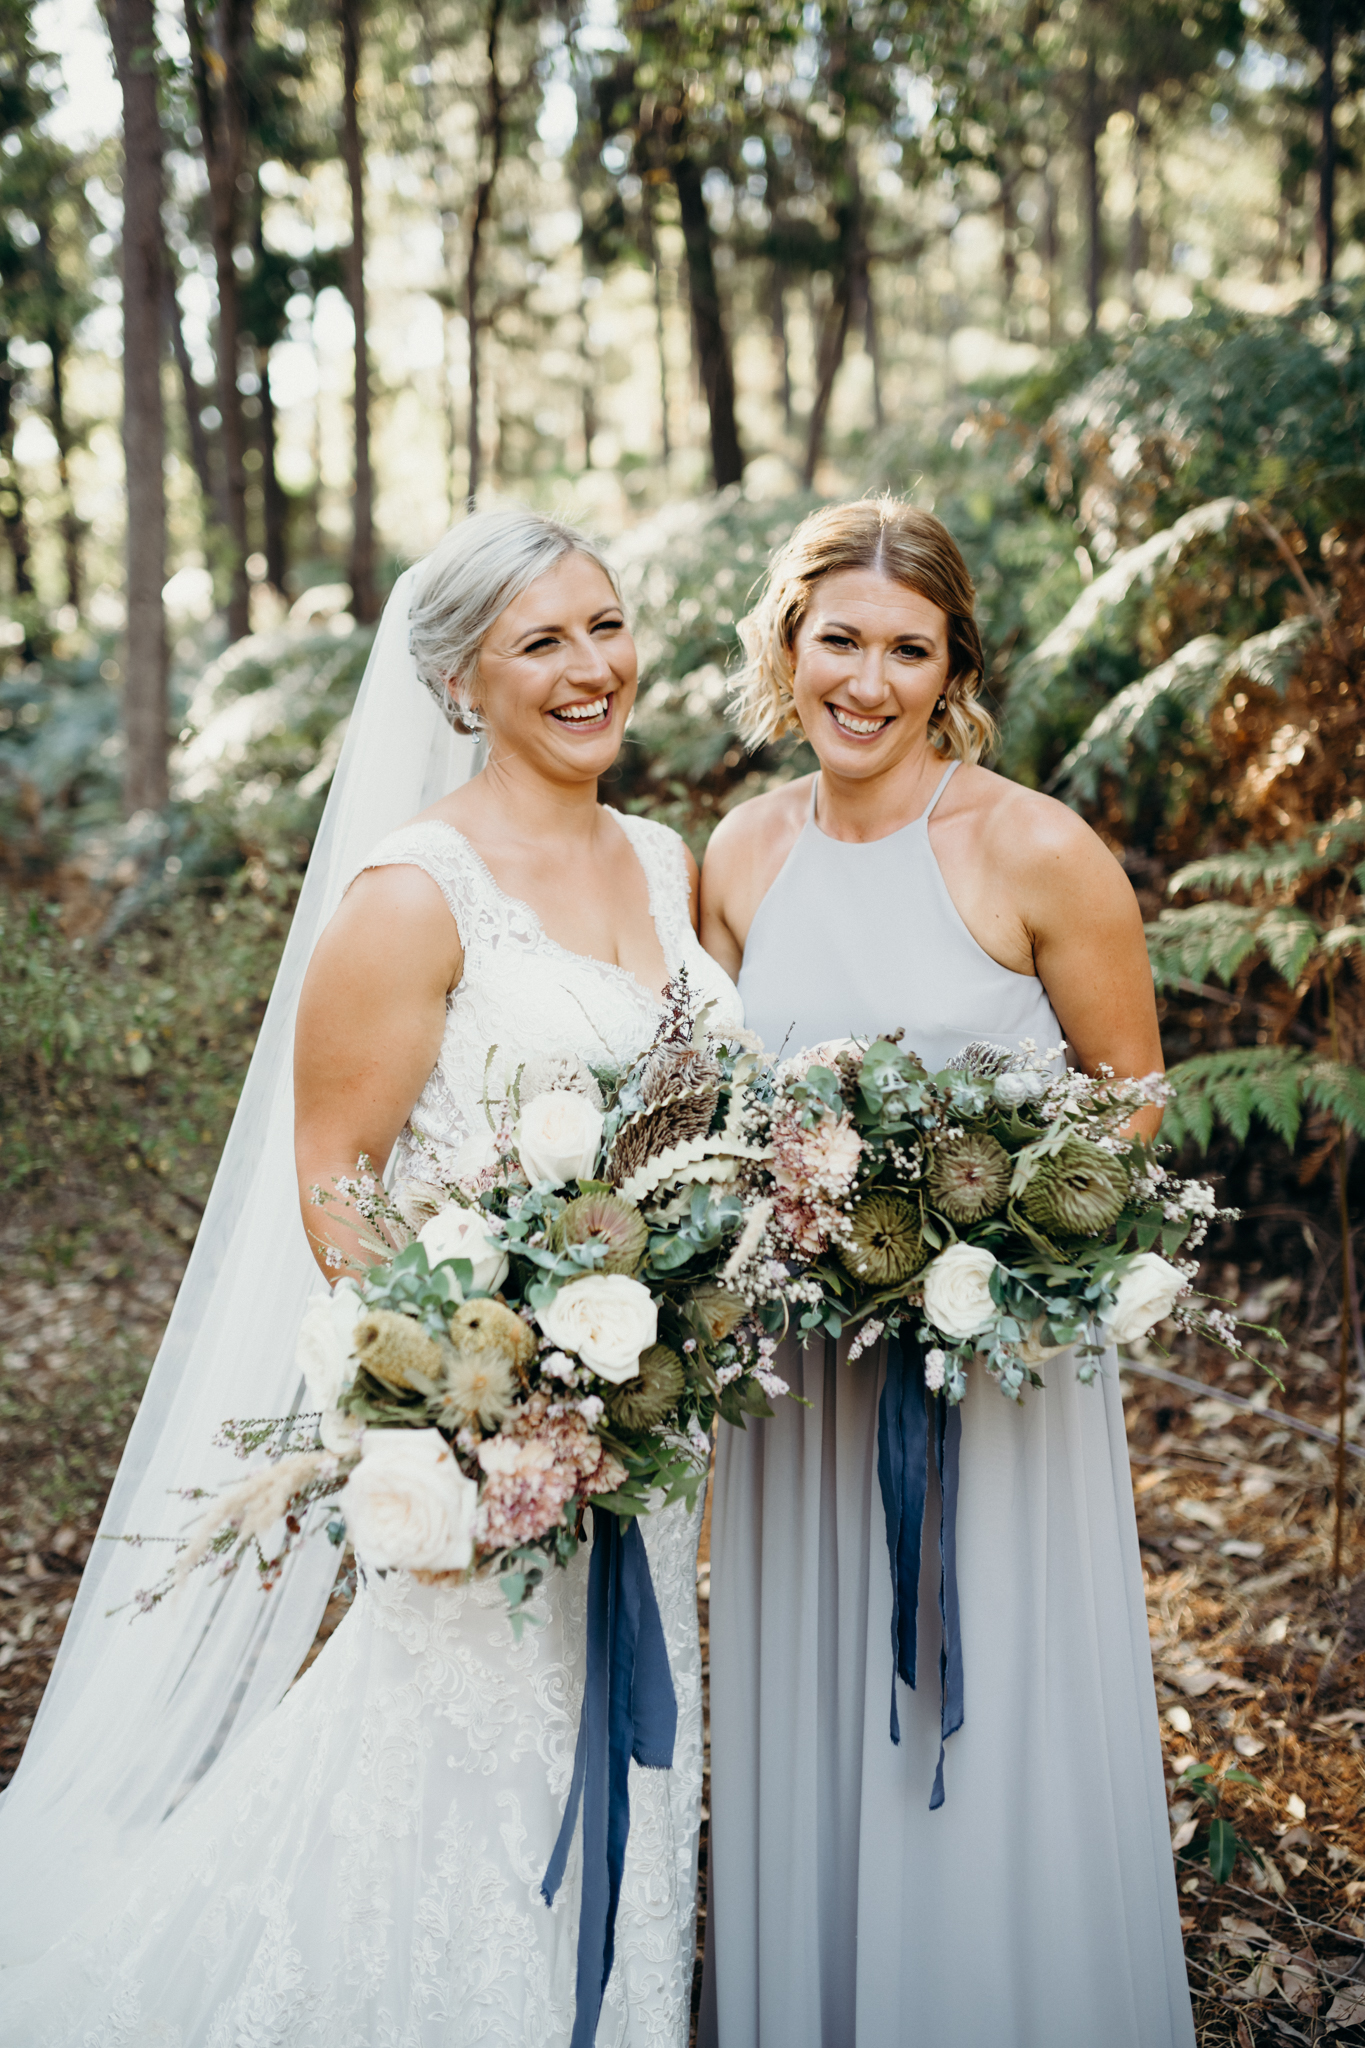 Perth Wedding Bride & Bridesmaid